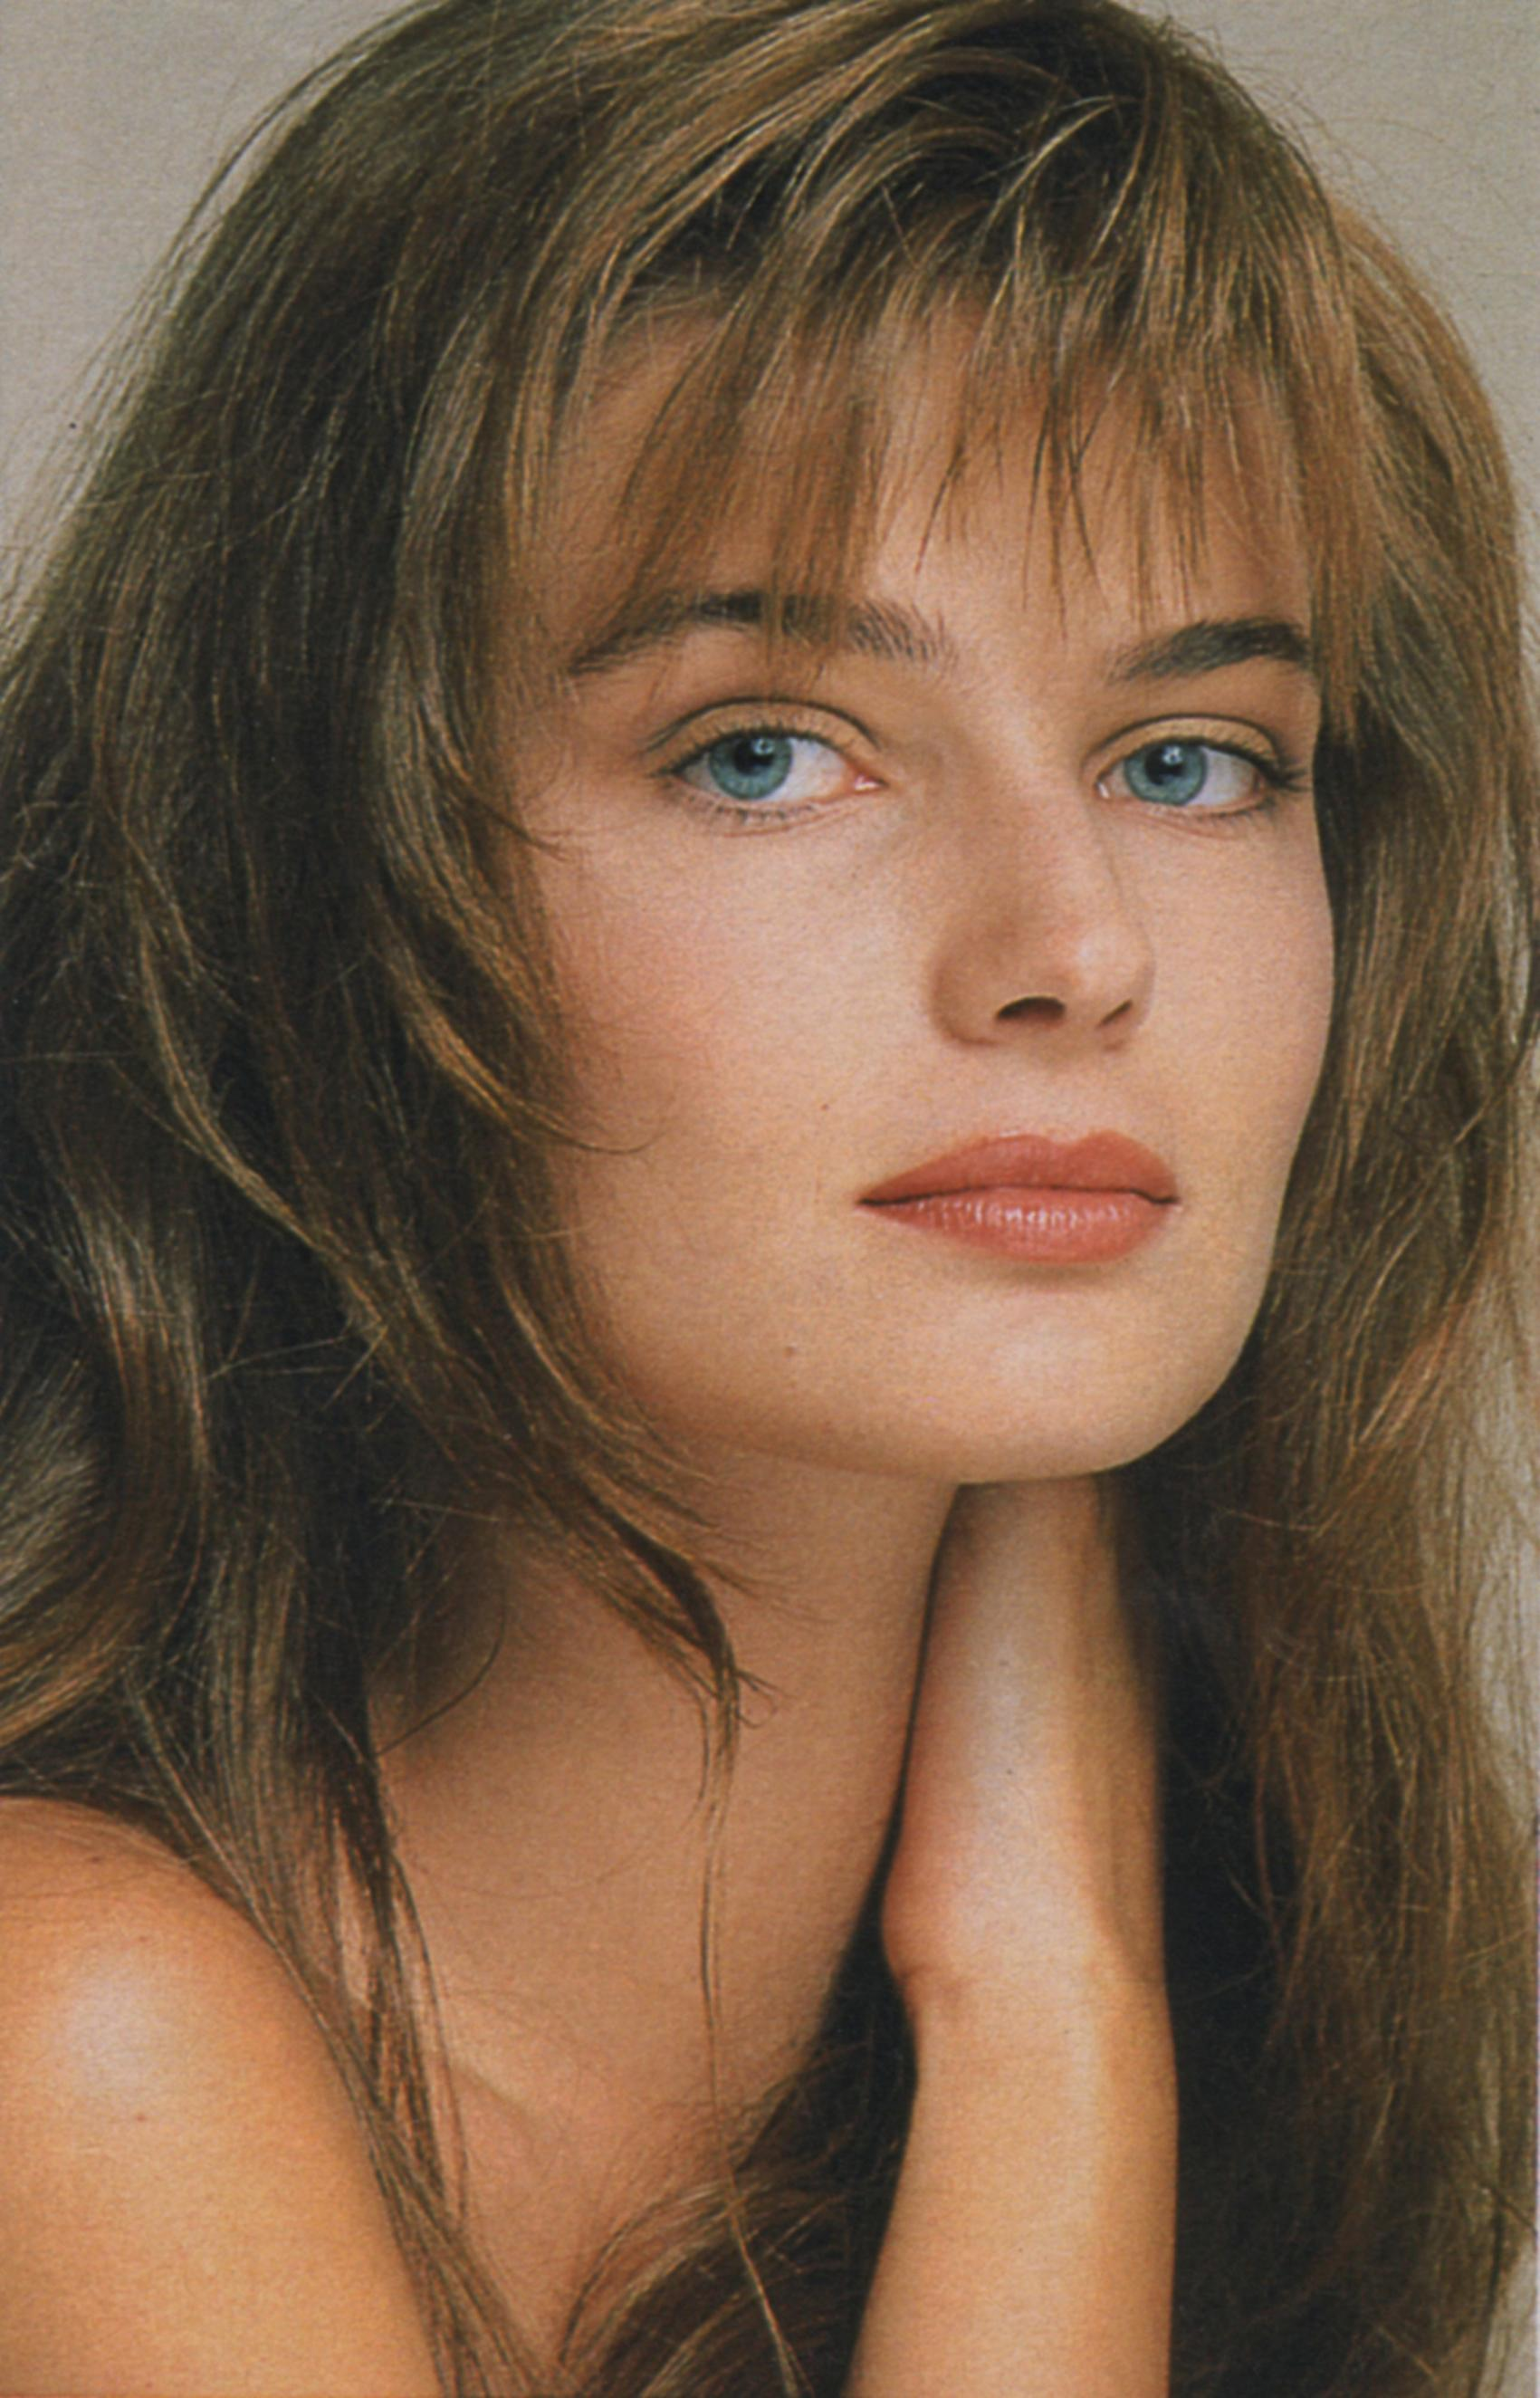 paulina online dating And it seems like 30 years later not much has changed for former catwalk queen paulina porizkova  up online lots of  dating philadelphia.